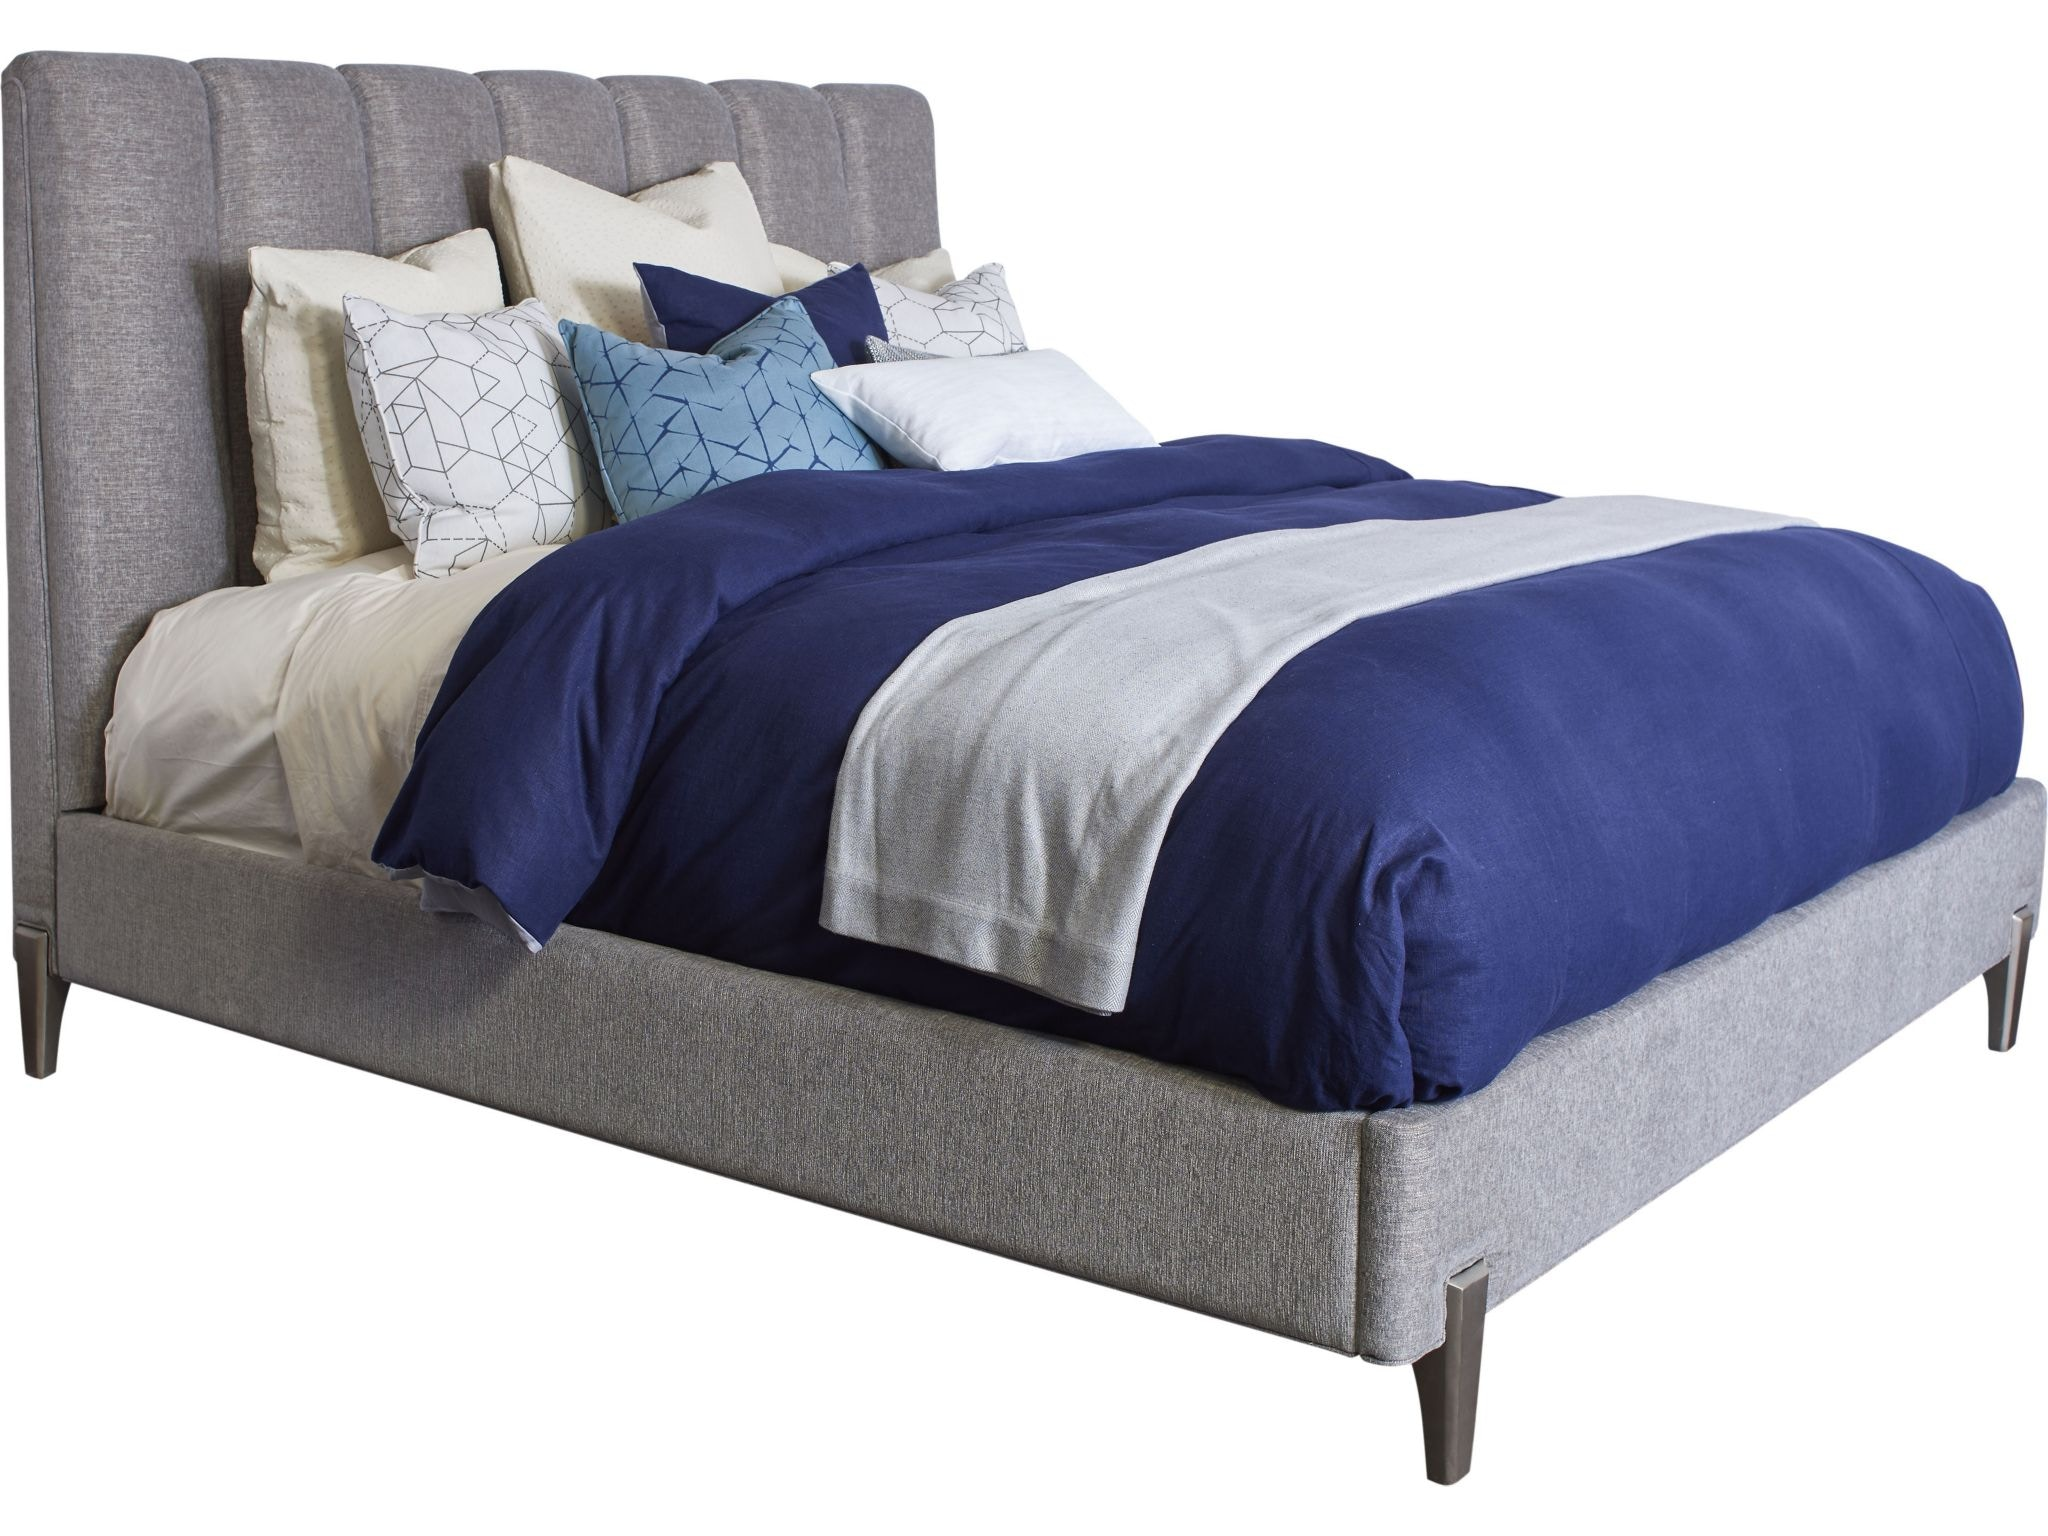 Thomasville Bedroom Leah Upholstered Bed (Queen) 84711 455   Bacons  Furniture   Port Charlotte, FL